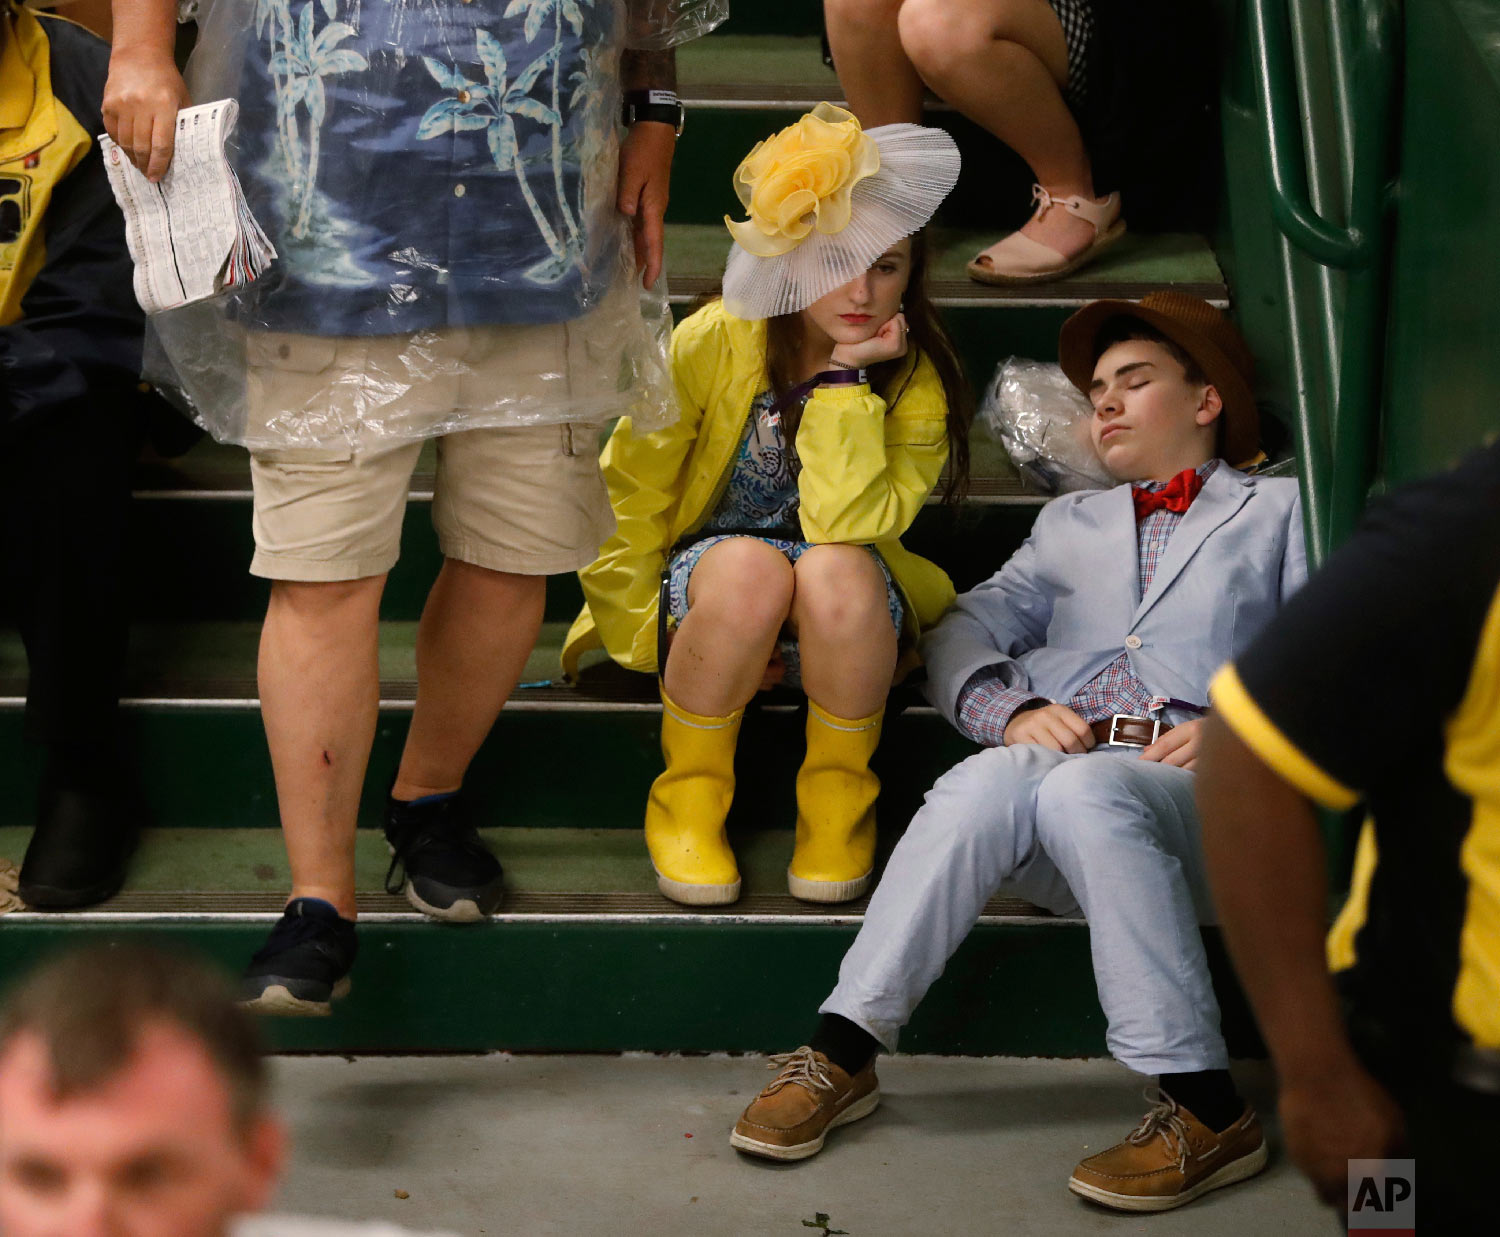 Fans take shelter from the rain before the 144th running of the Kentucky Derby horse race at Churchill Downs Saturday, May 5, 2018, in Louisville, Ky. (AP Photo/John Minchillo)